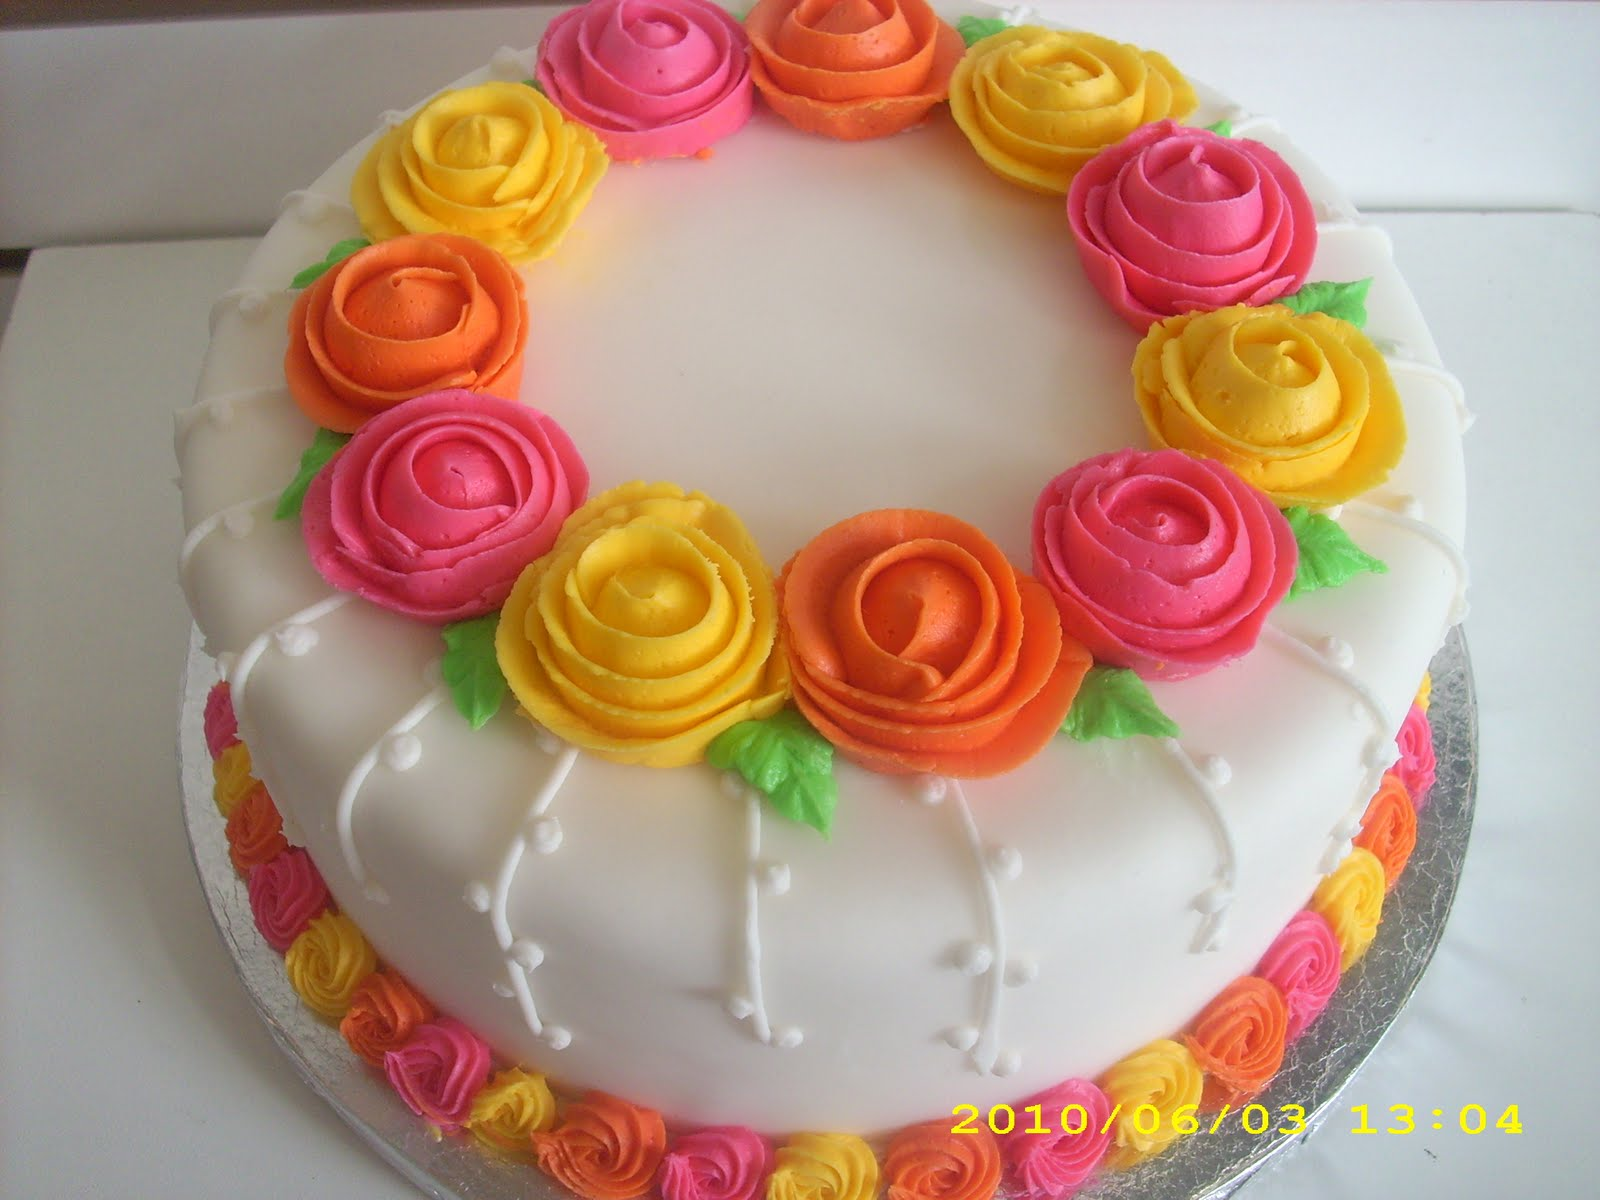 Cake Decor Without Icing : Cake Decorating heydanixo